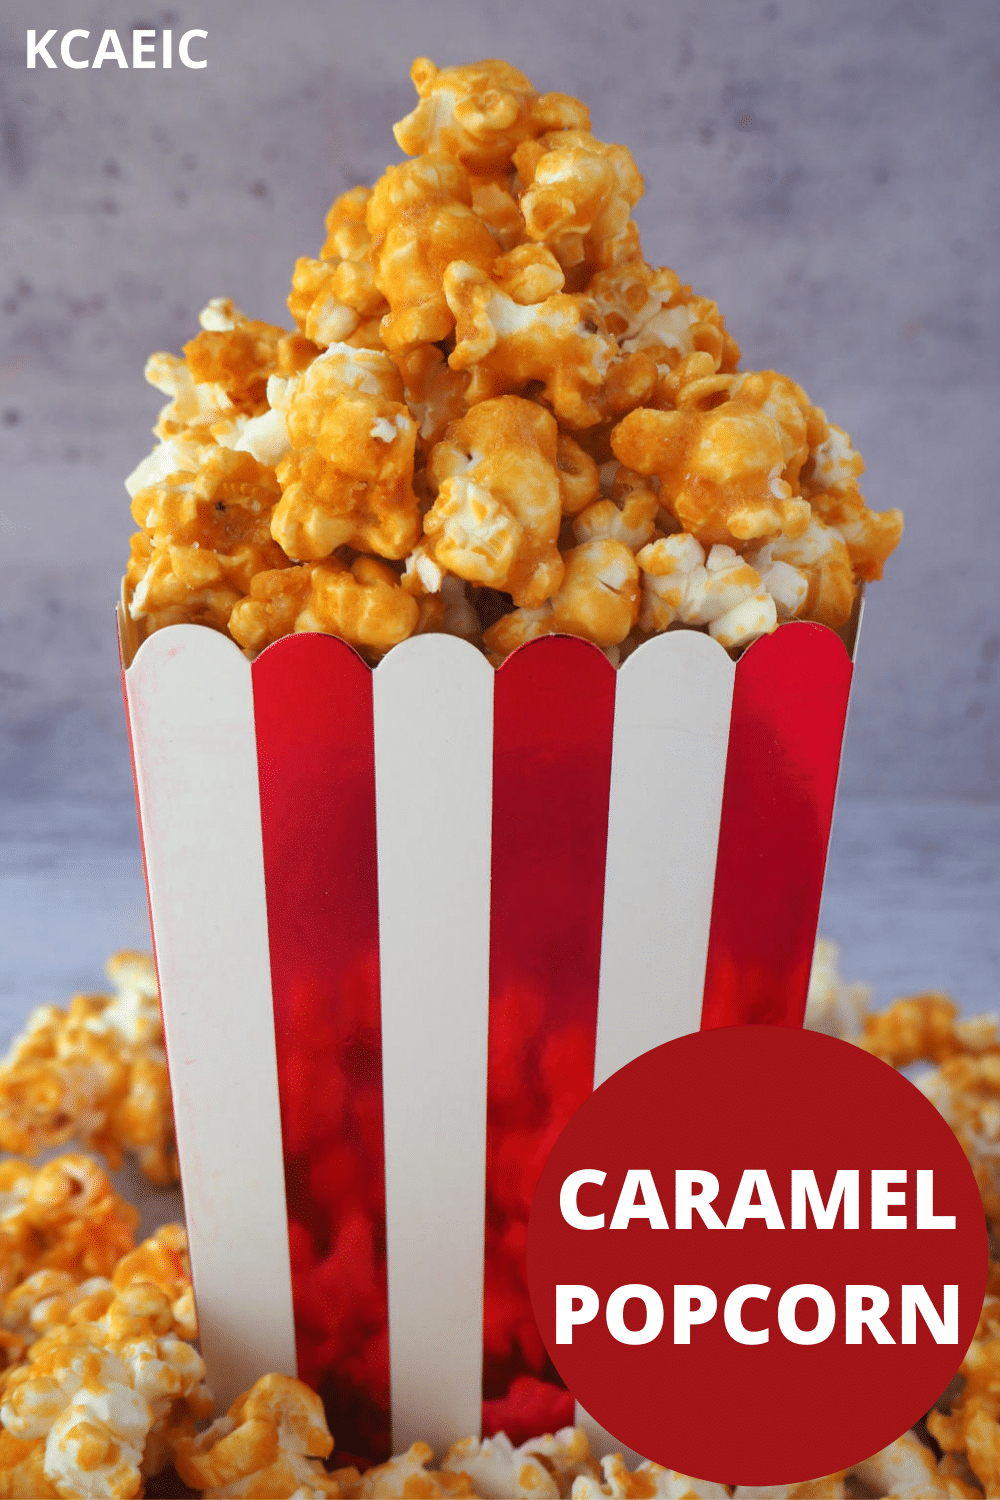 Caramel popcorn pilled in a red and white striped box, with caramel popcorn scattered around the bottom and text overlay, caramel popcorn and KCAEIC.